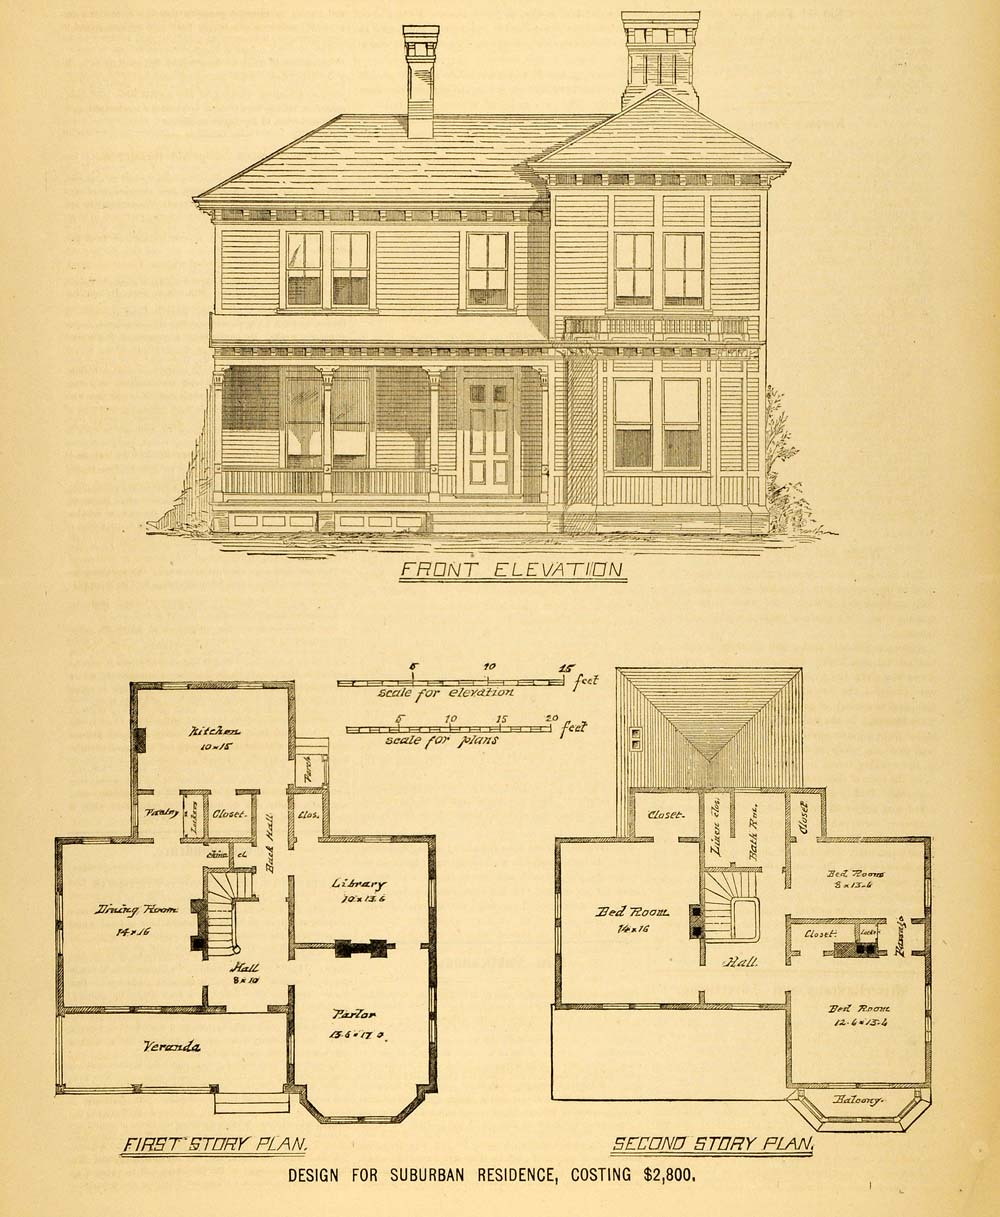 1878 print house architectural design floor plans for Copy architectural plans